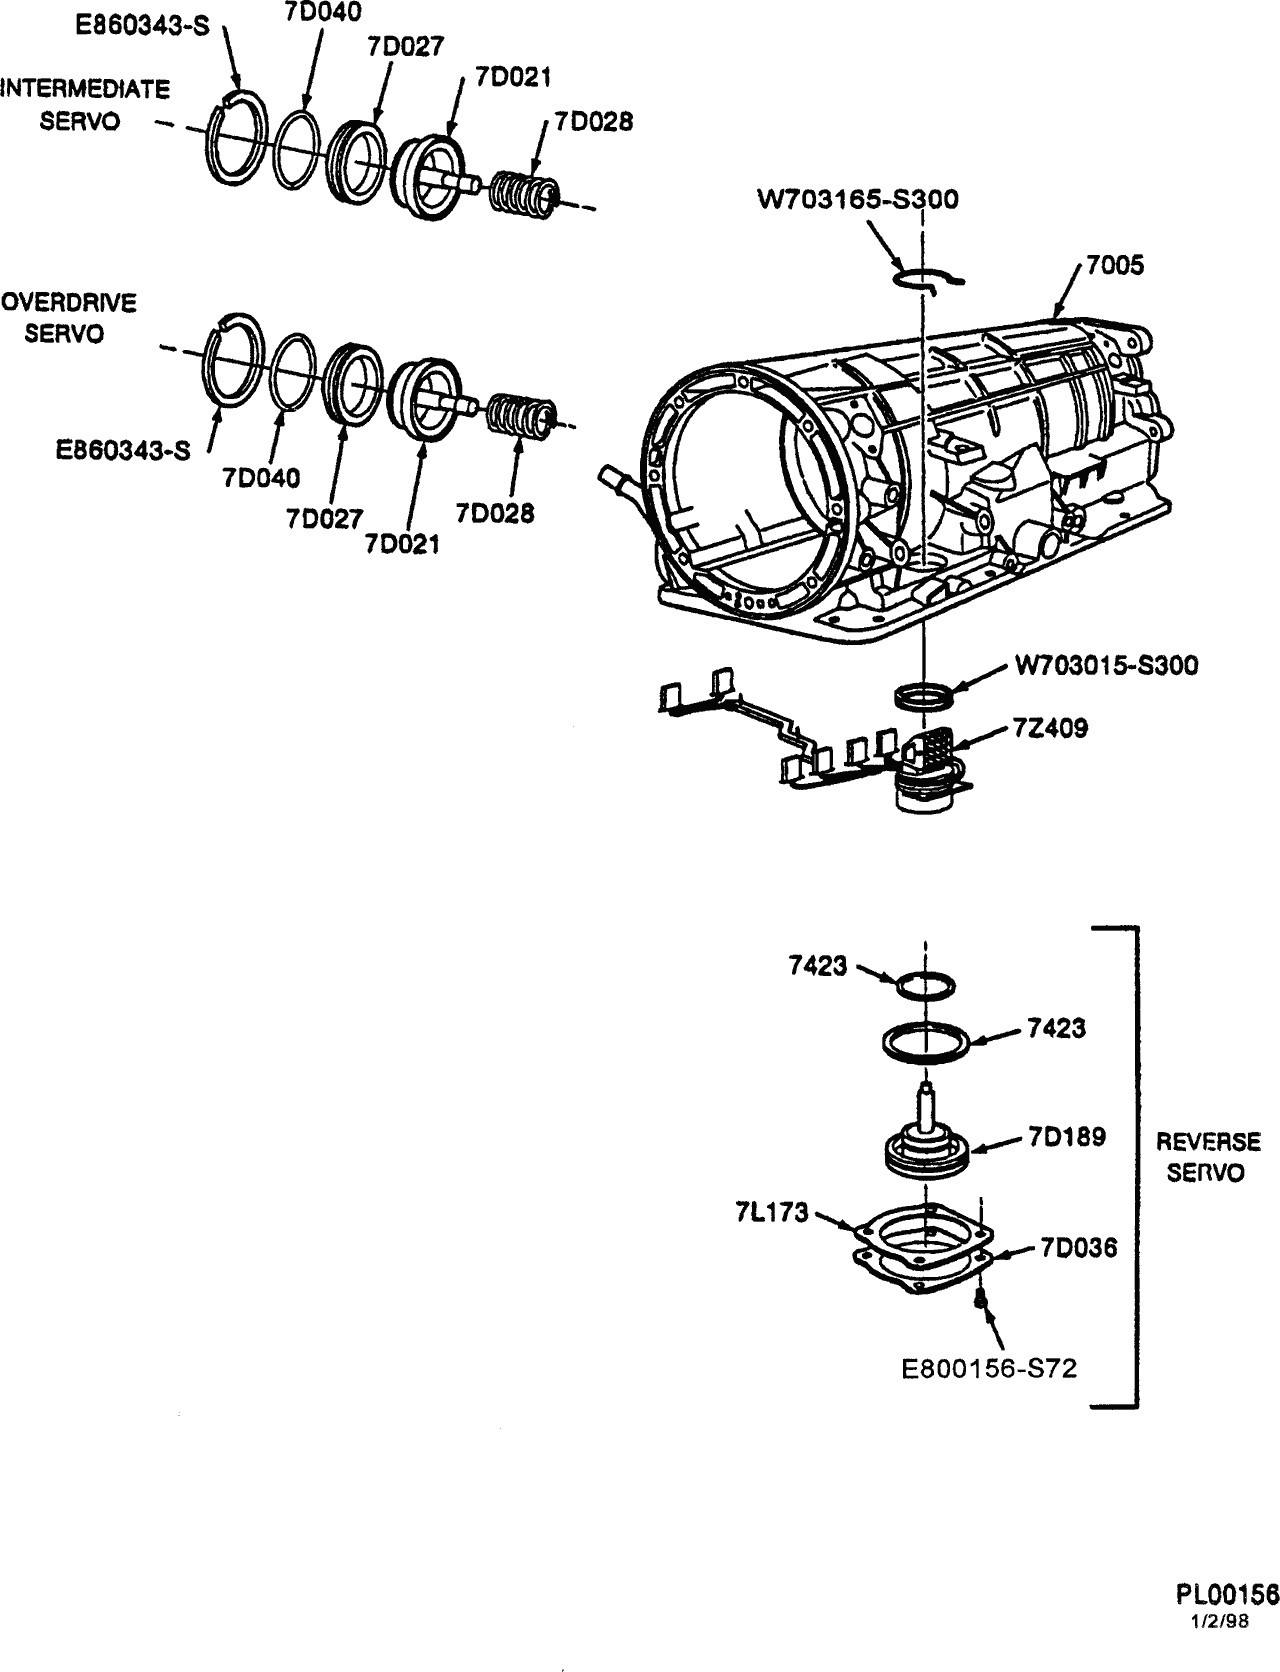 1996 ford Ranger Parts Diagram Trans Leak Exploded View Of 4r44e Automatic Trans Ranger forums Of 1996 ford Ranger Parts Diagram